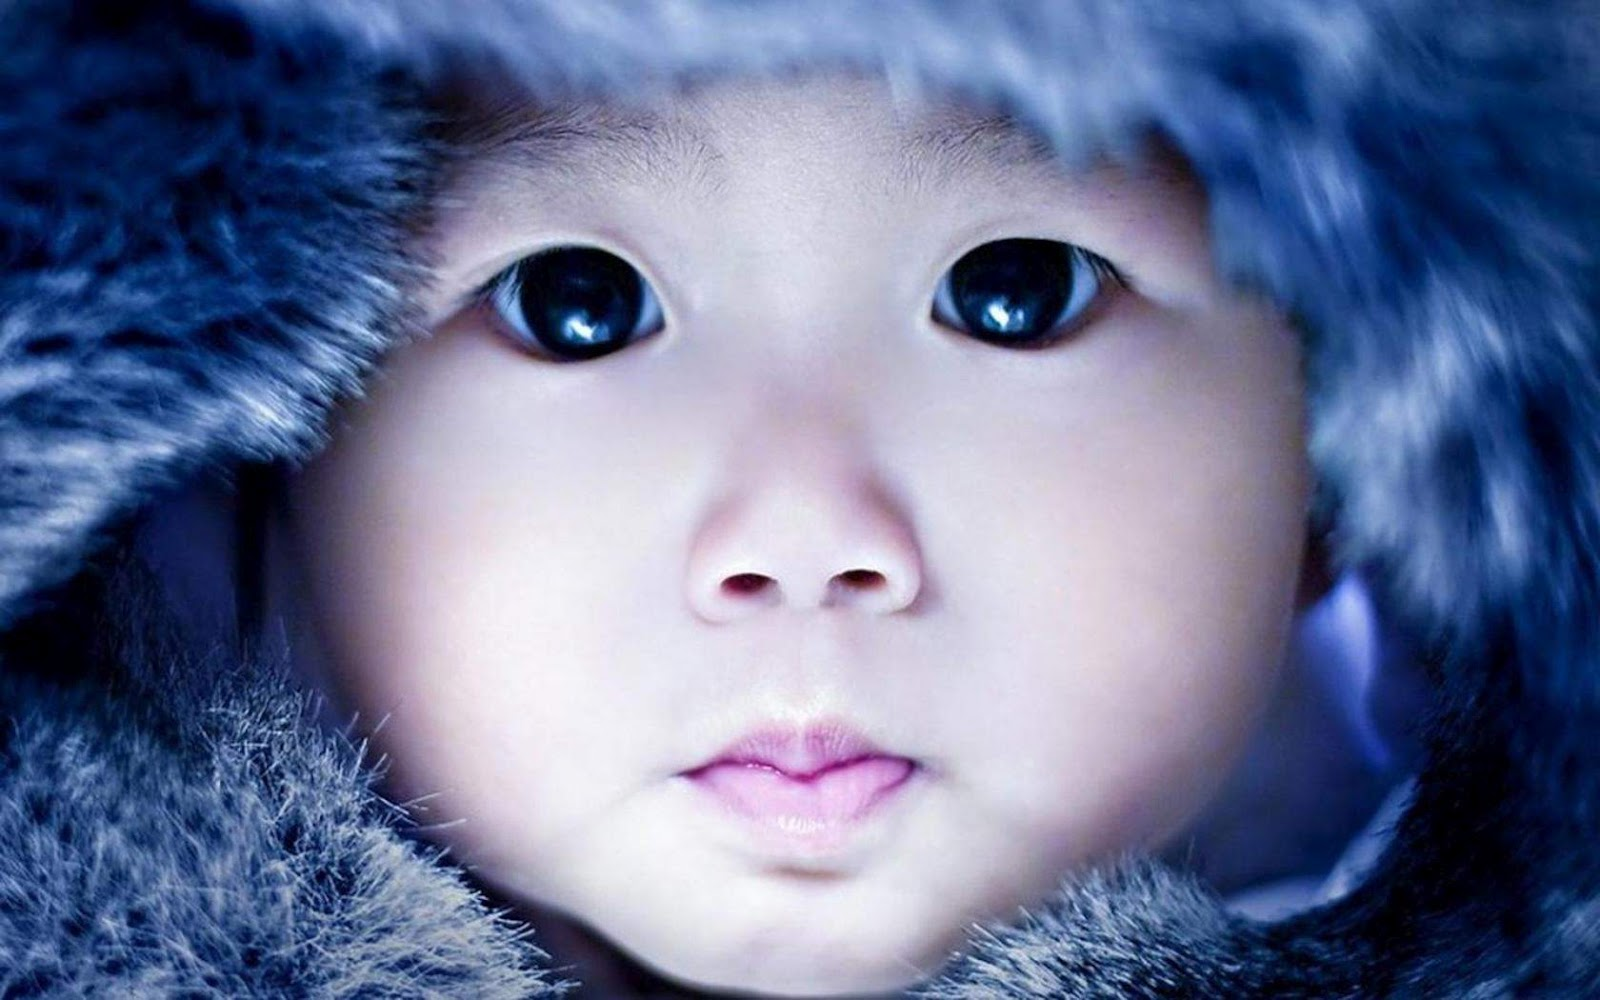 cute Baby Love You Wallpaper : Wallpaper collection For Your computer and Mobile Phones: 20 Best collection of cute Baby Wallpapers